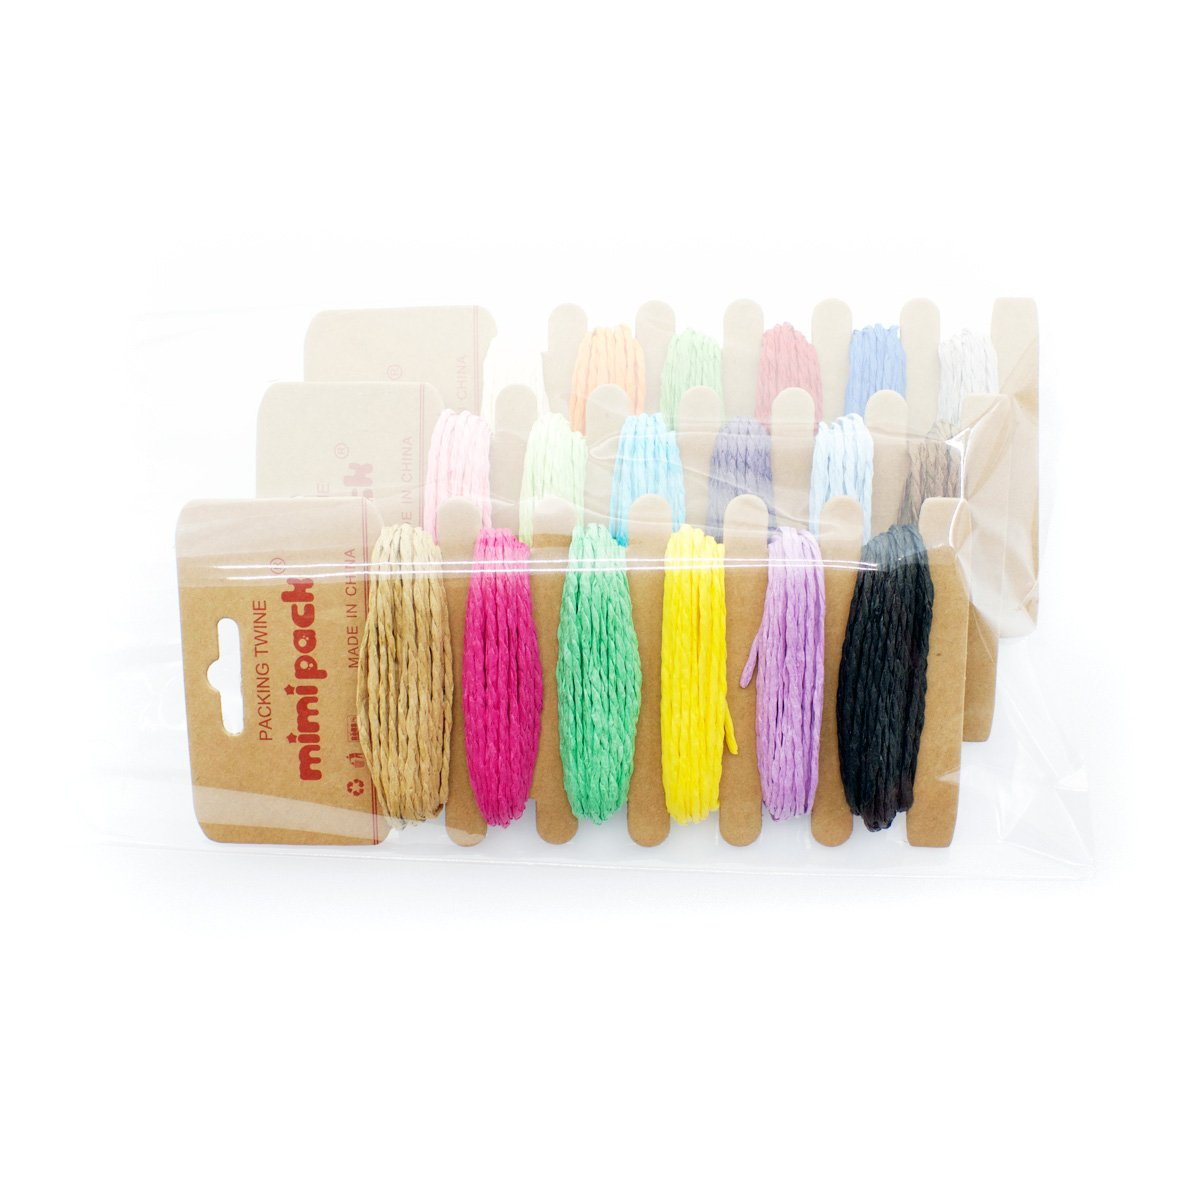 Mimi Pack Bright Paper Raffia Ribbon Twine Strong Solid Assorted Colors for DIY Crafts, Gift Wrapping, Gardening, Scrapbooking, and Decoration (Multicolor 3 Pack) by Mimi Pack (Image #2)